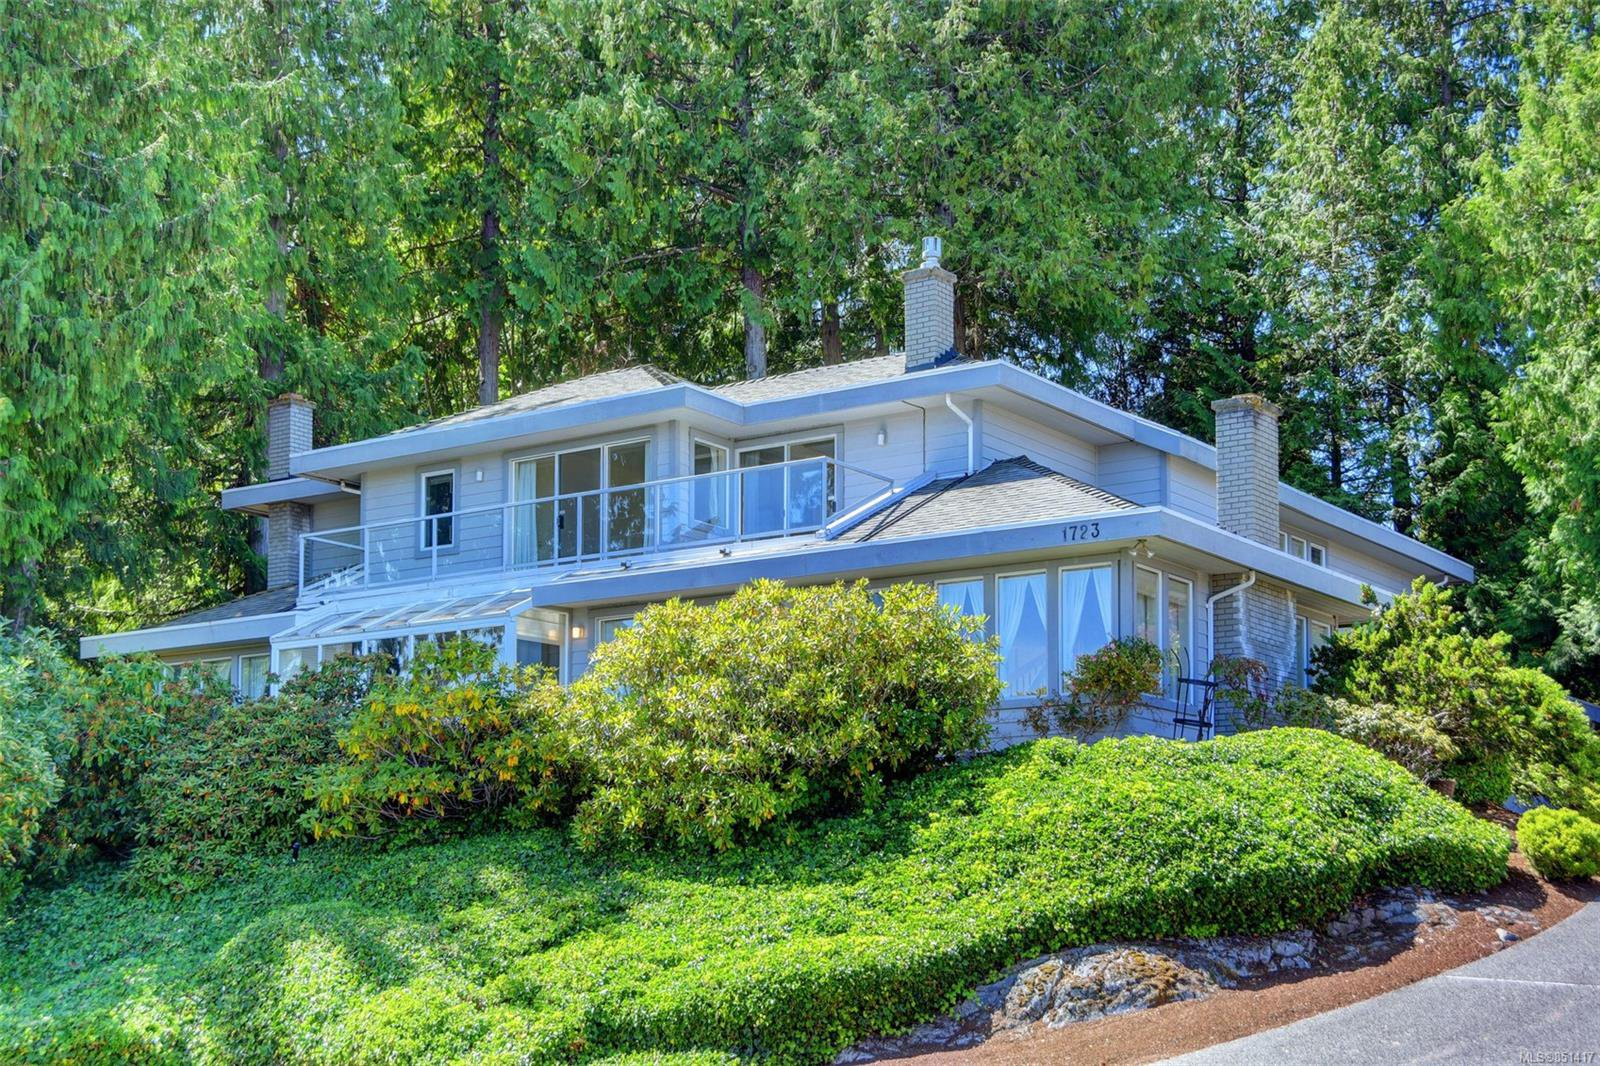 Main Photo: 1723 Mayneview Terr in : NS Dean Park House for sale (North Saanich)  : MLS®# 851417